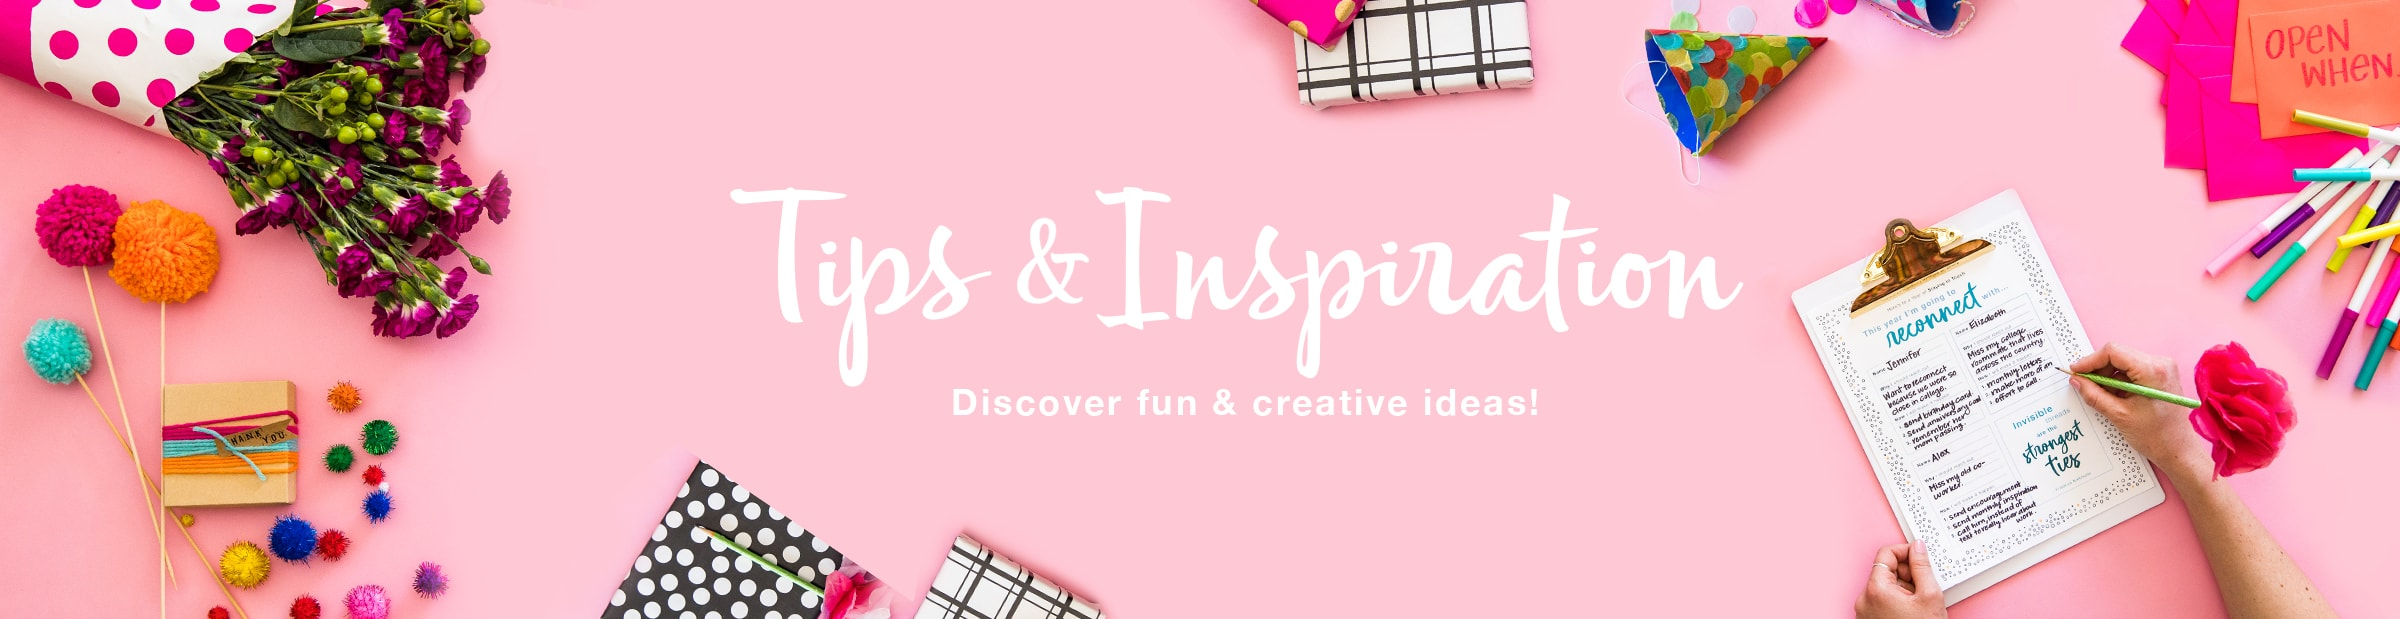 Tips and Inspiration. Stickers, flowers, cards, gift wrap, and crafts.